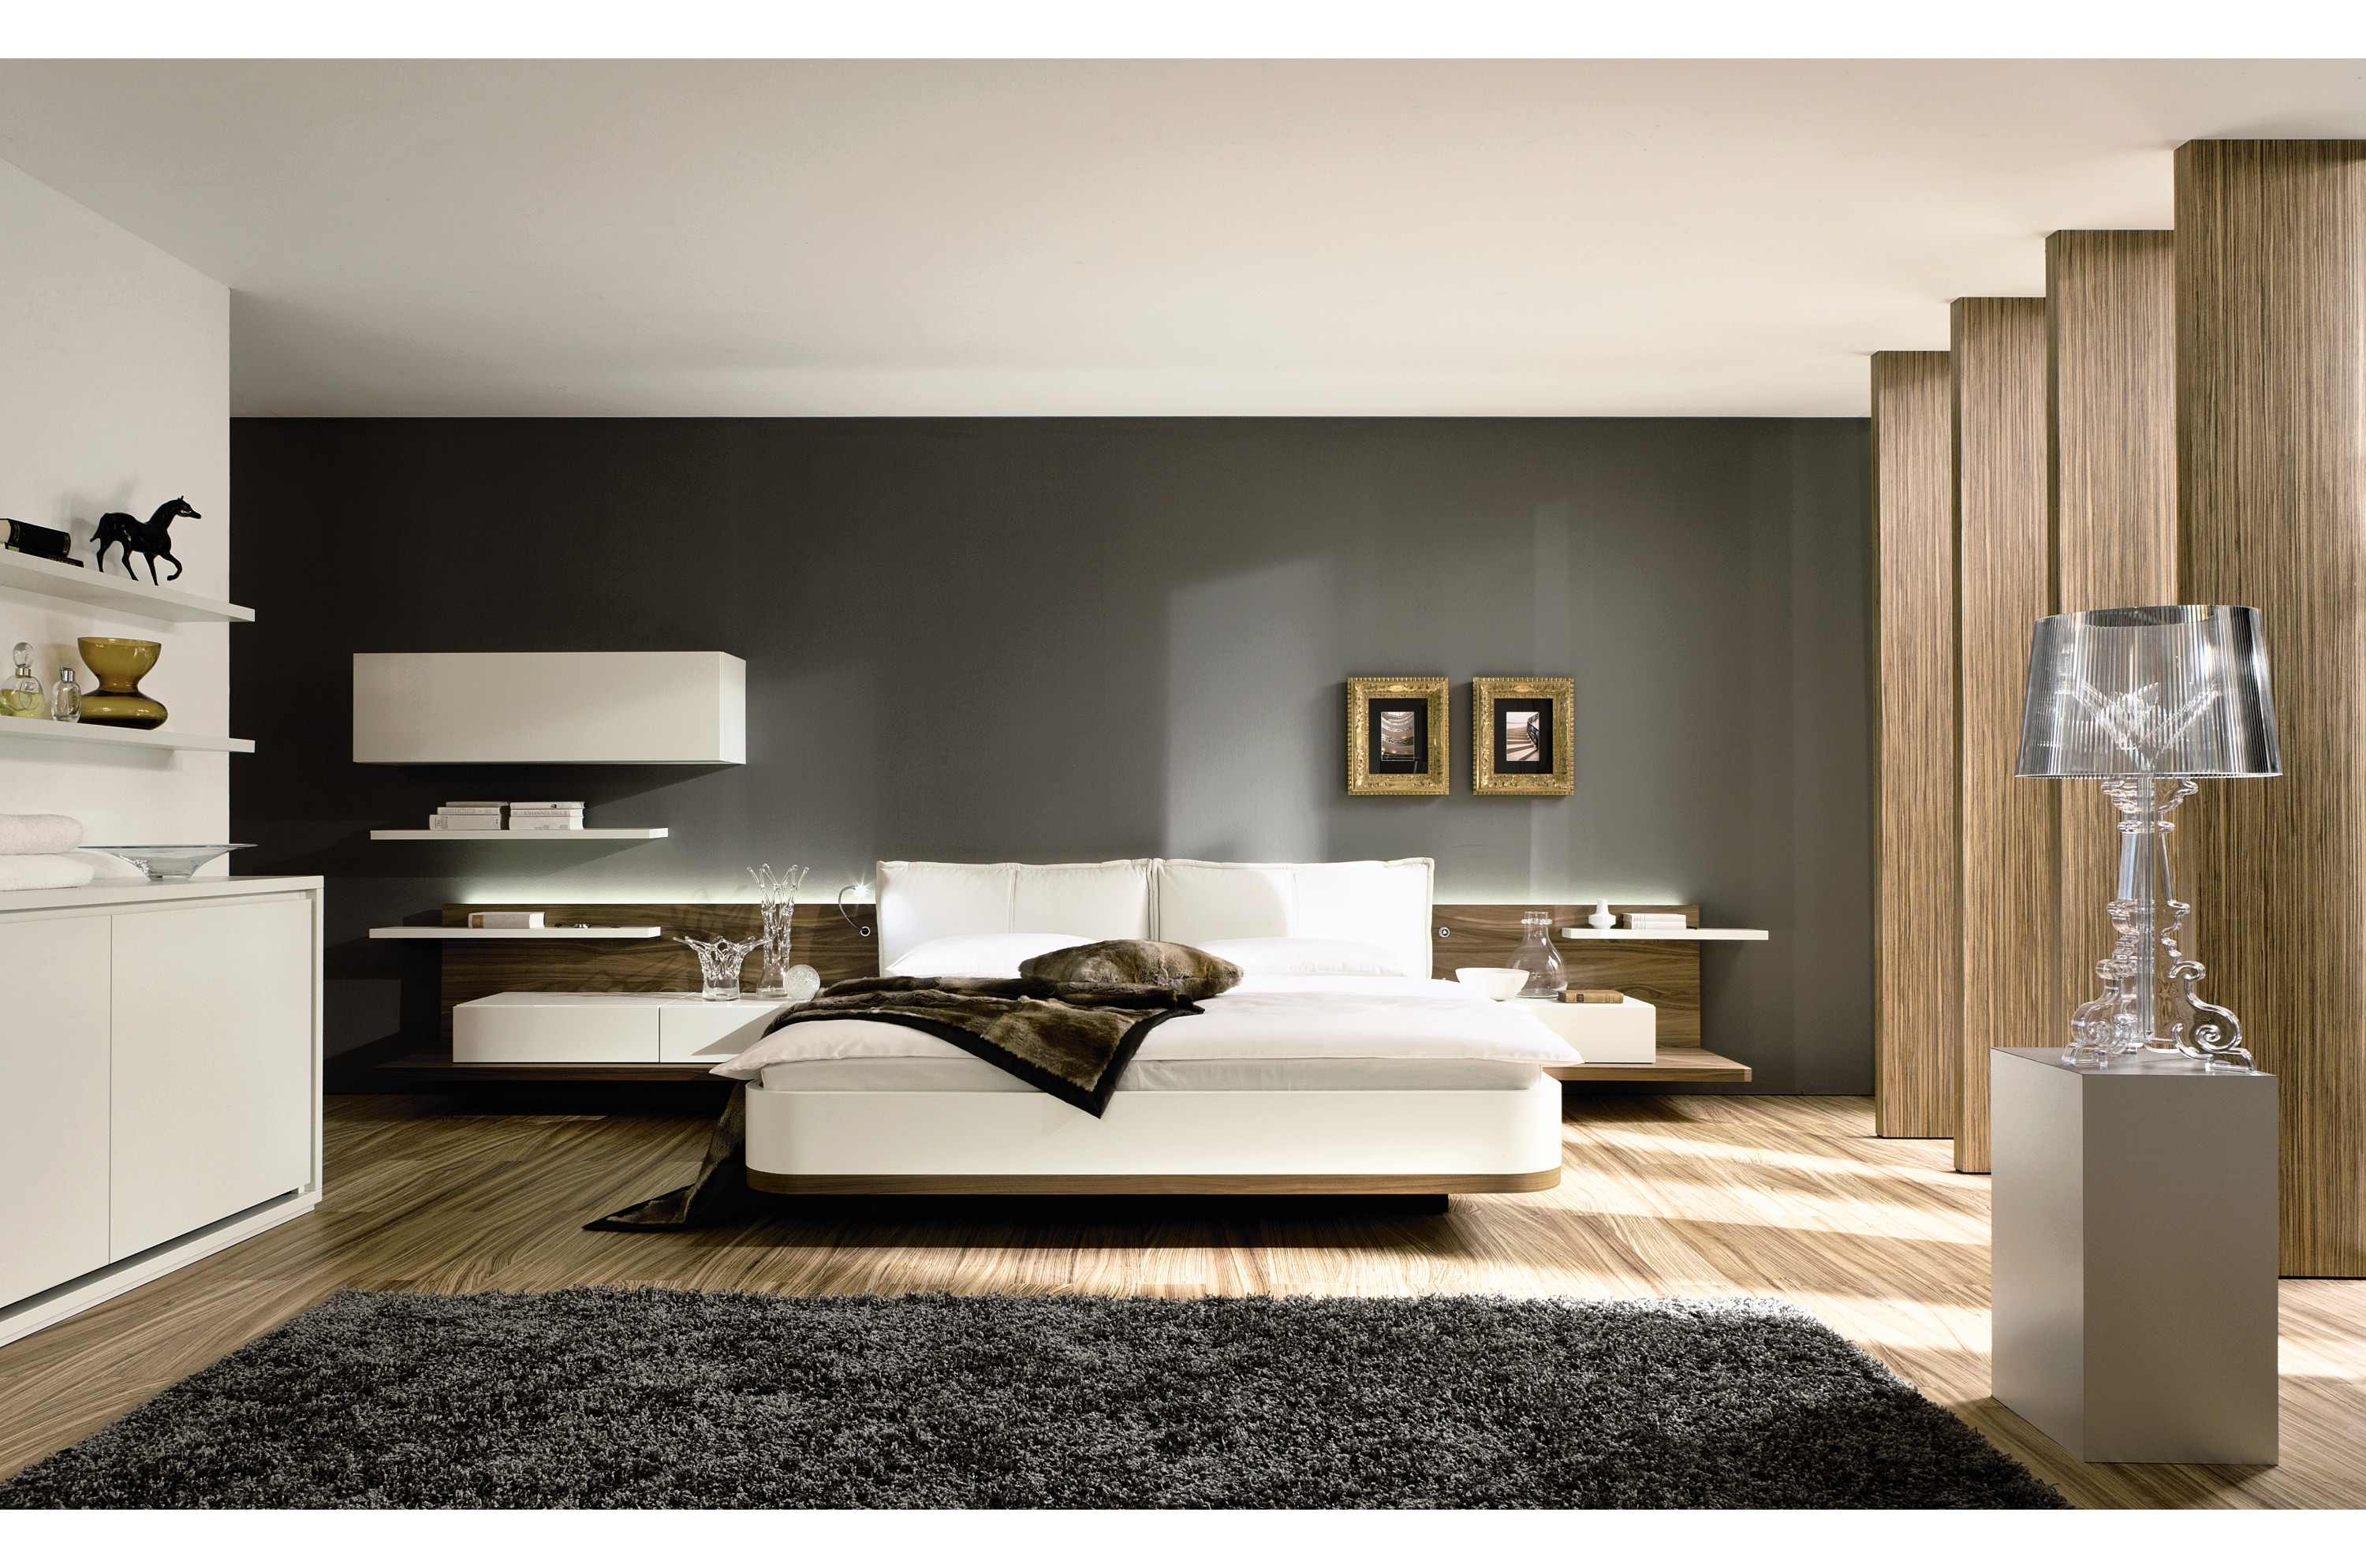 ... Modern Bedroom Innovation Bedroom Ideas Interior Design For Modern  Bedroom Interior Design